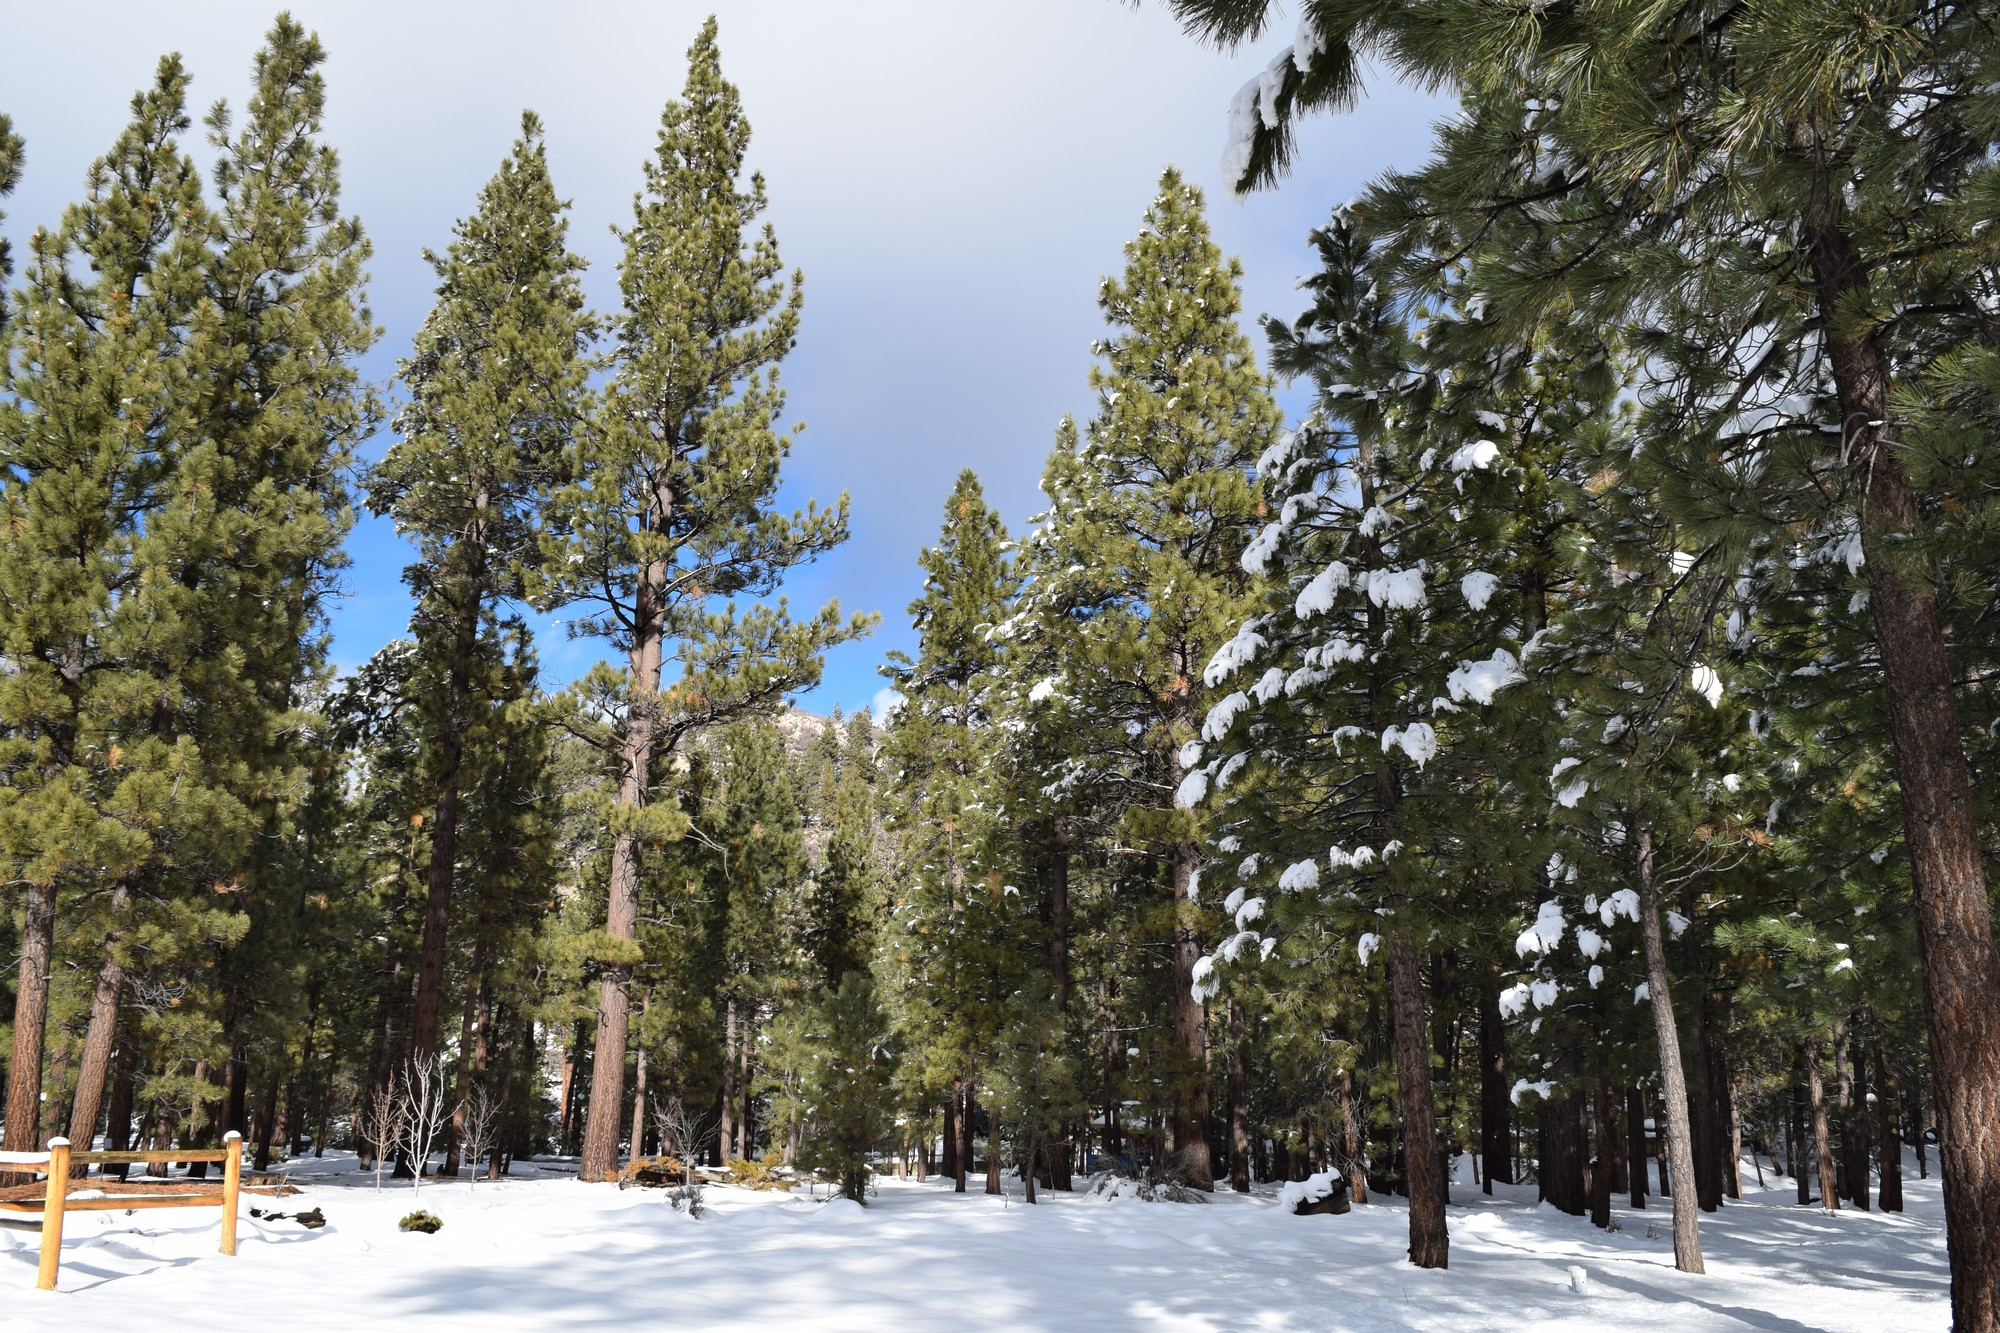 Land for Sale at 131 N. Starvation Flats Big Bear Lake, California, 92315 United States